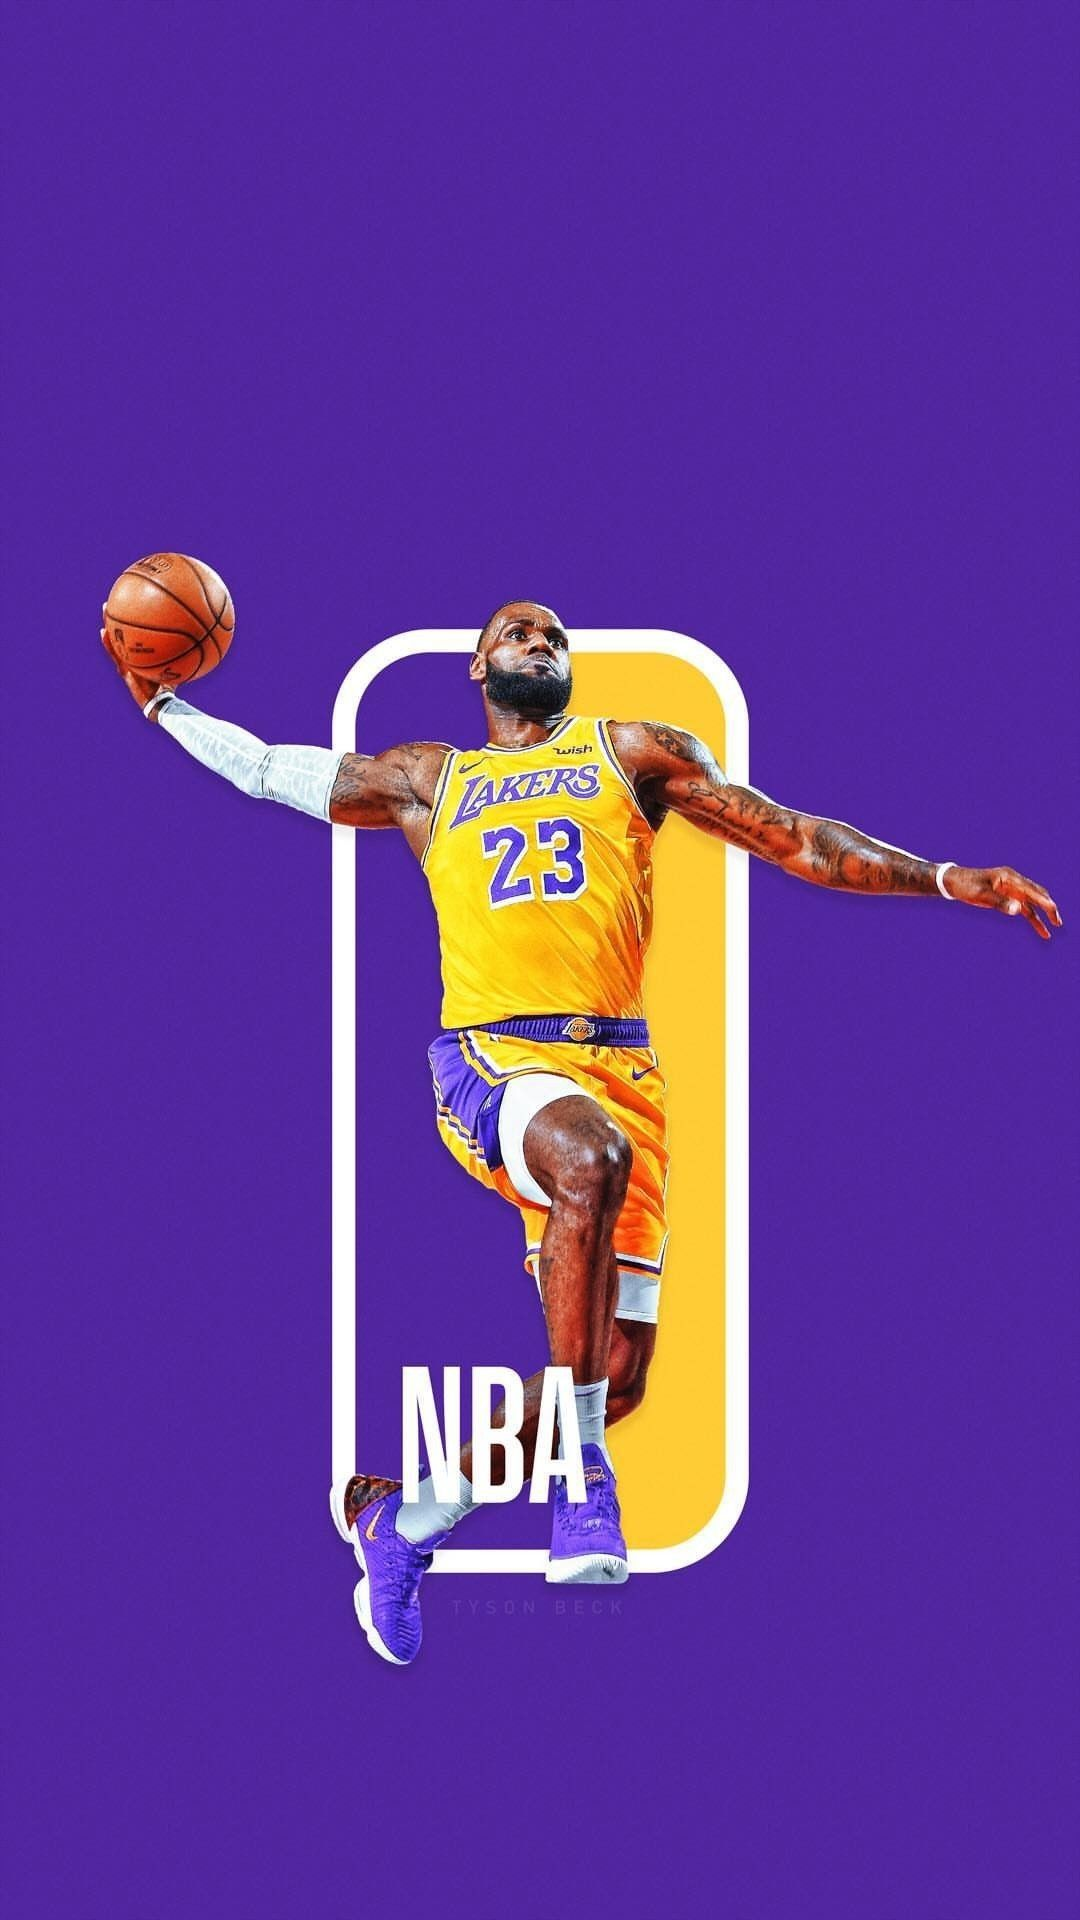 Cartoon Kevin Durant Wallpaper Home Screen In 2020 Lebron James Wallpapers Lebron James Lakers Nba Lebron James